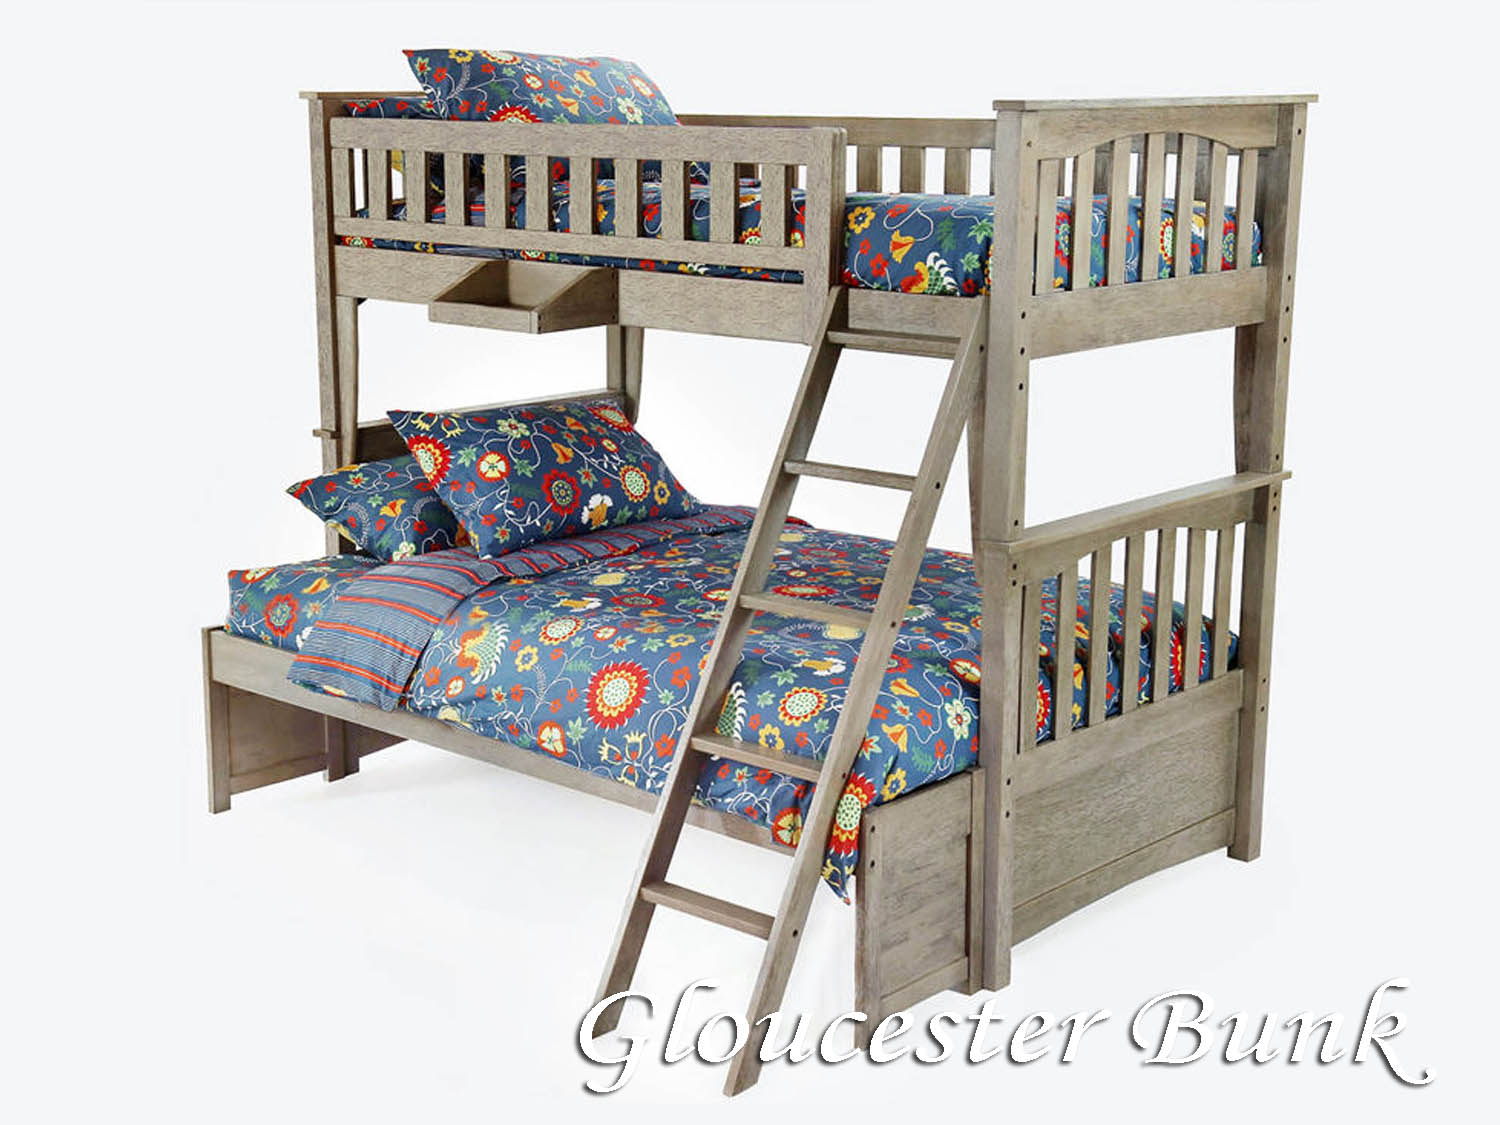 Gloucester, Bunk Bed, Youth, Kids, Bedroom, Barbo's Furniture